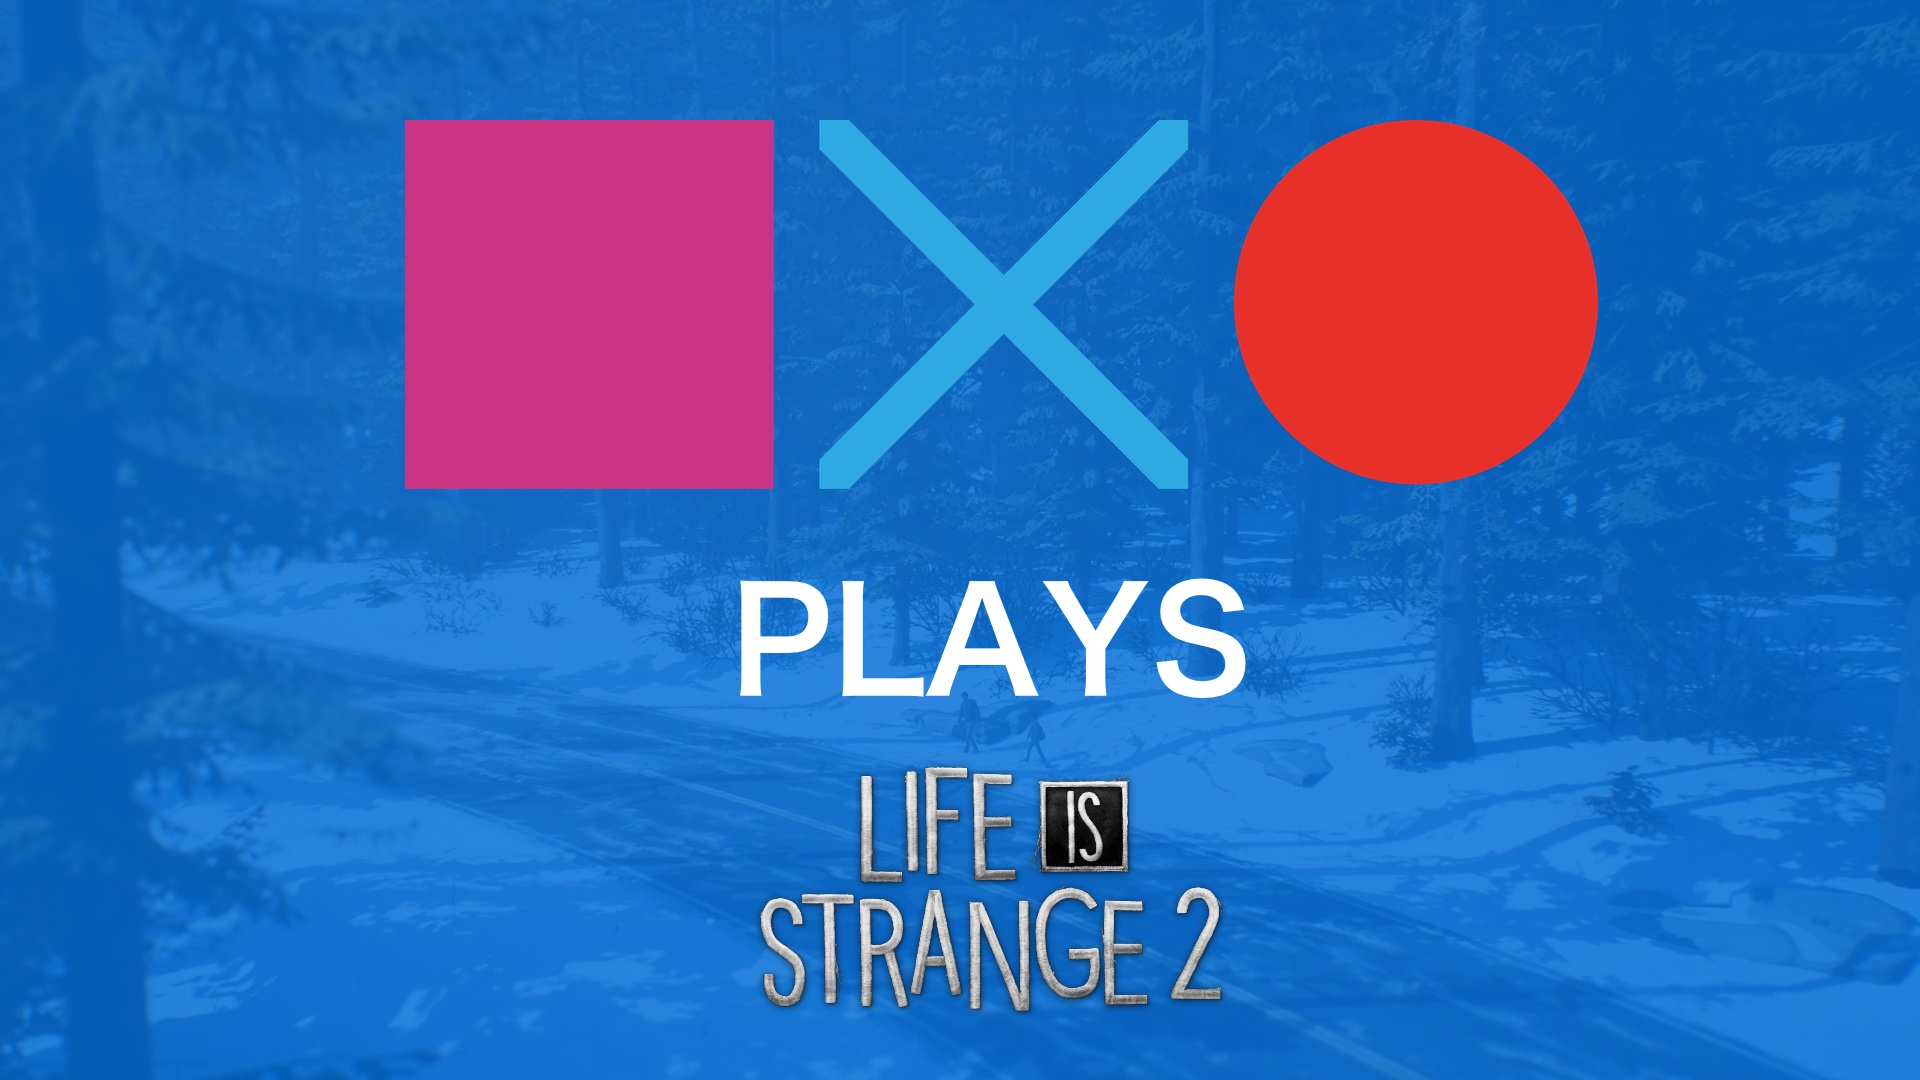 Life is Strange 2 – Rules | SquareXO Plays